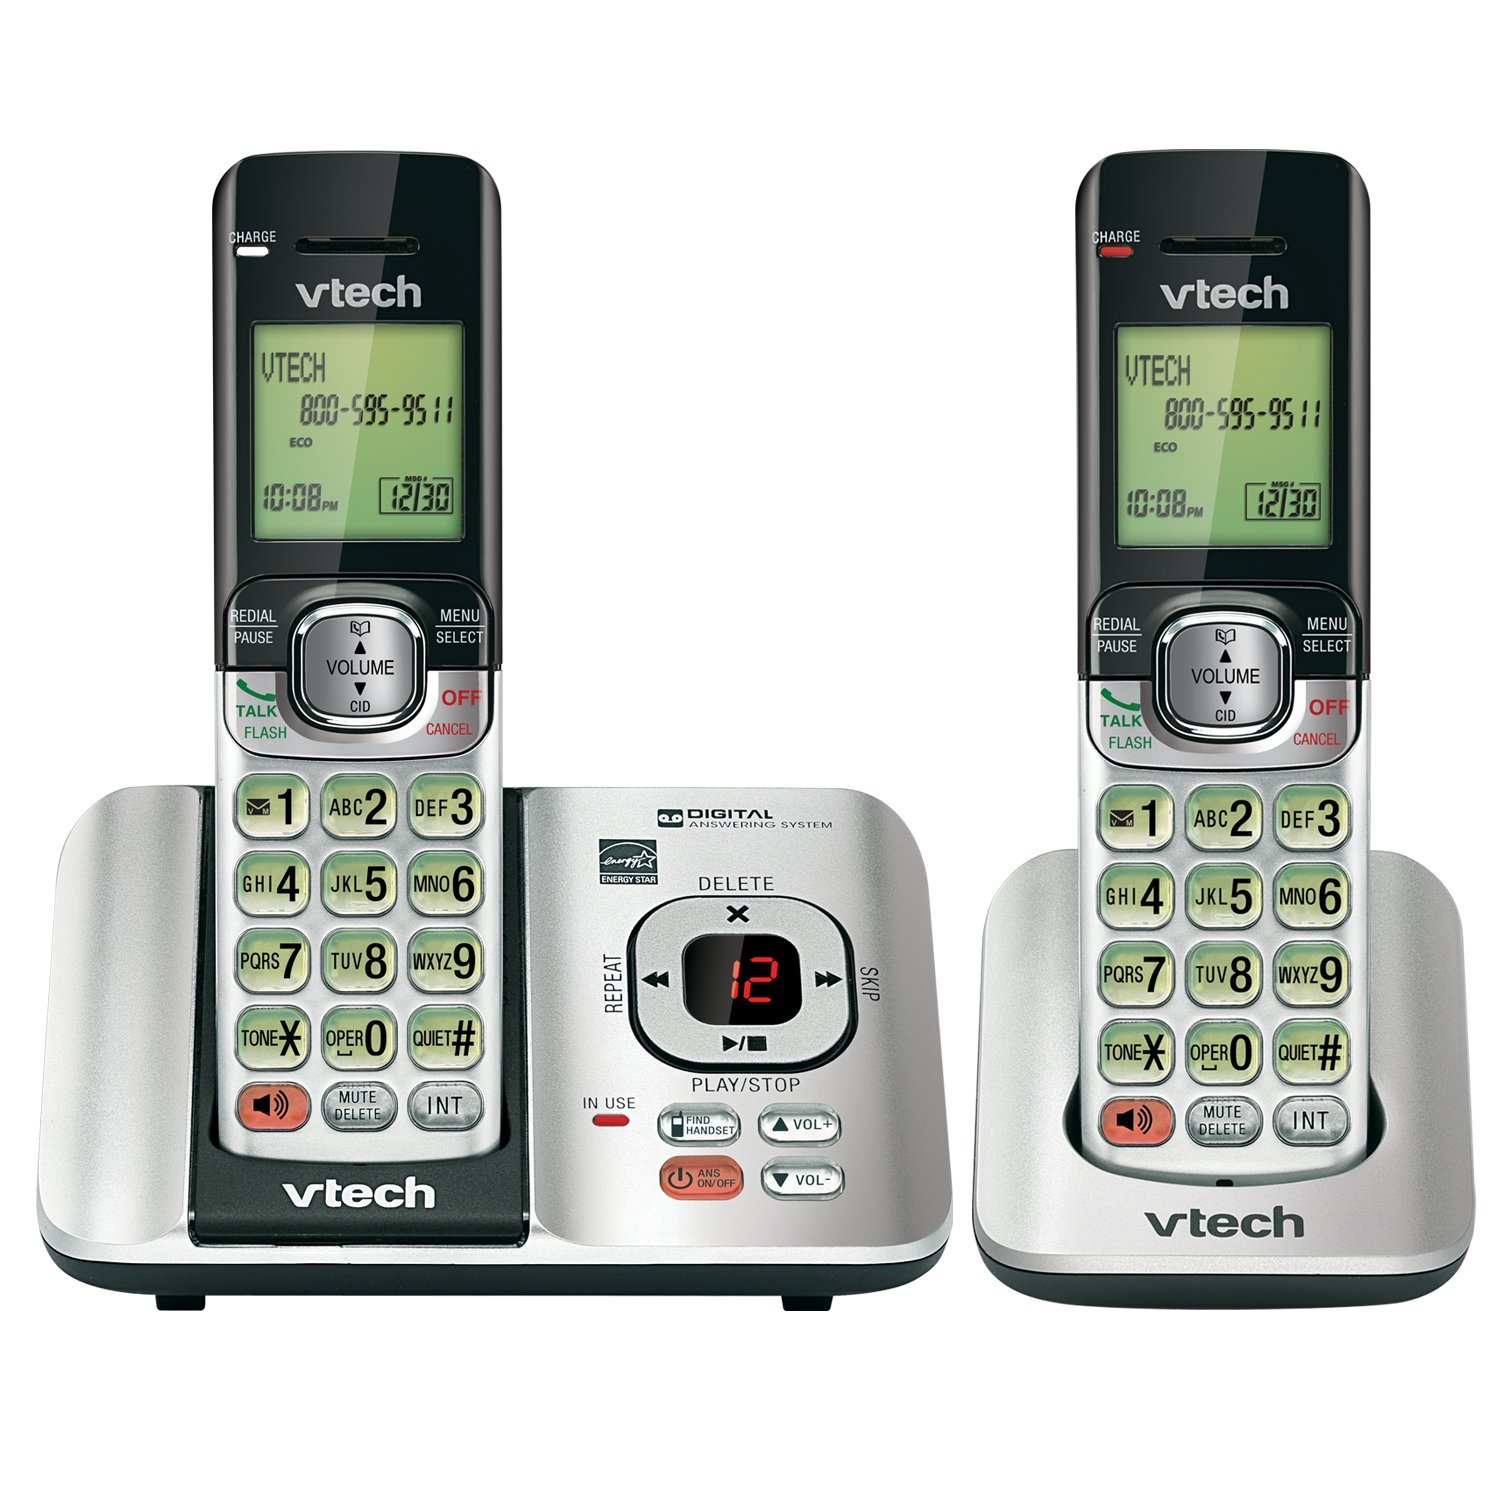 VTech CS6529-2 DECT 6.0 Phone Answering System with Caller ID/Call Waiting,... 692624158047   eBay